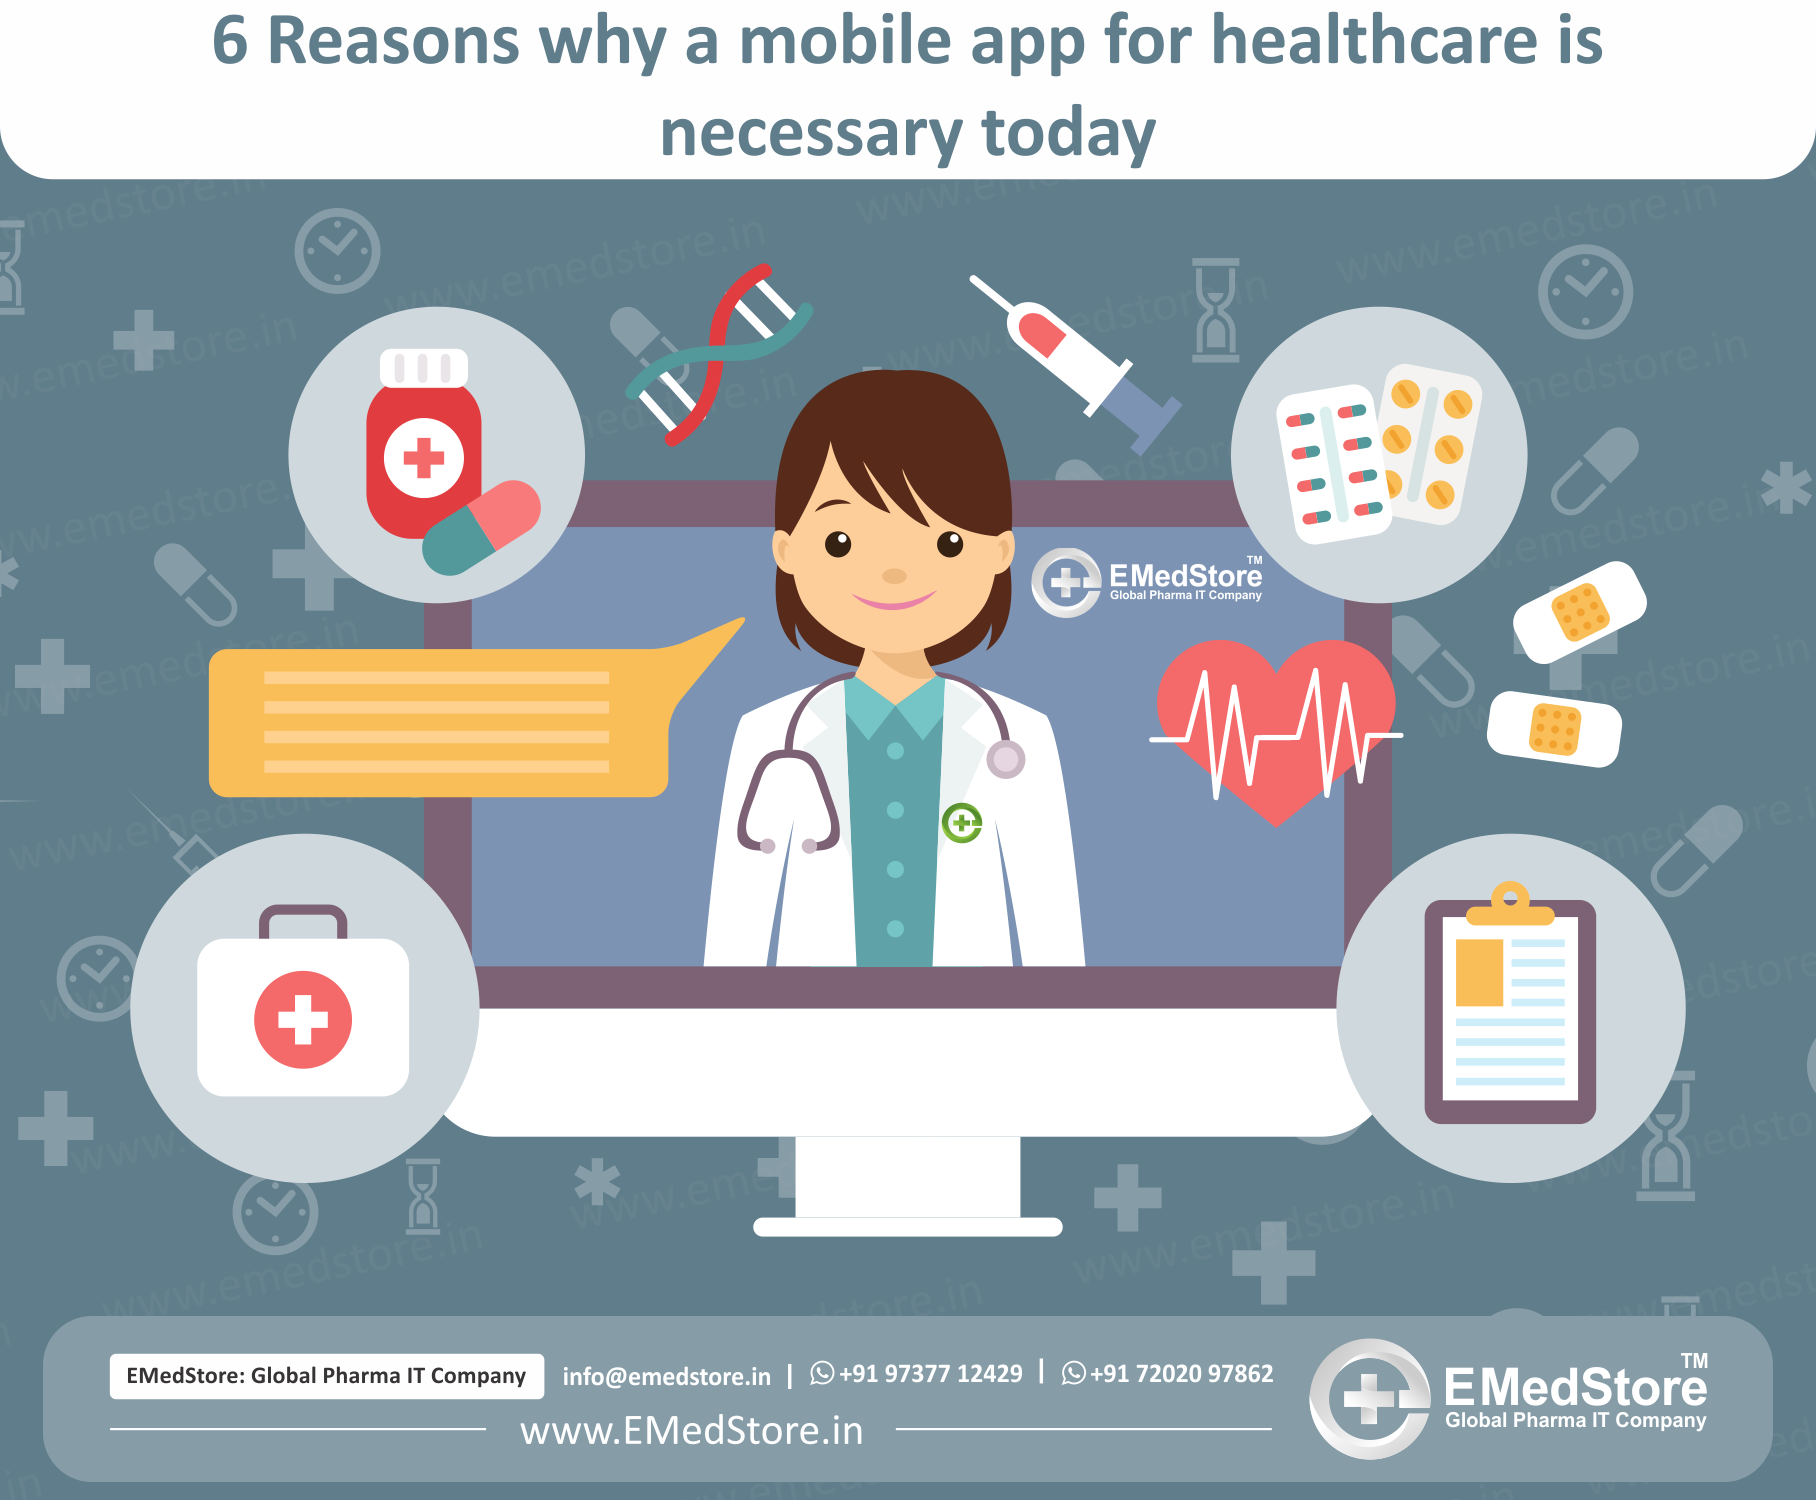 6 Reasons why a mobile app for healthcare is necessary today